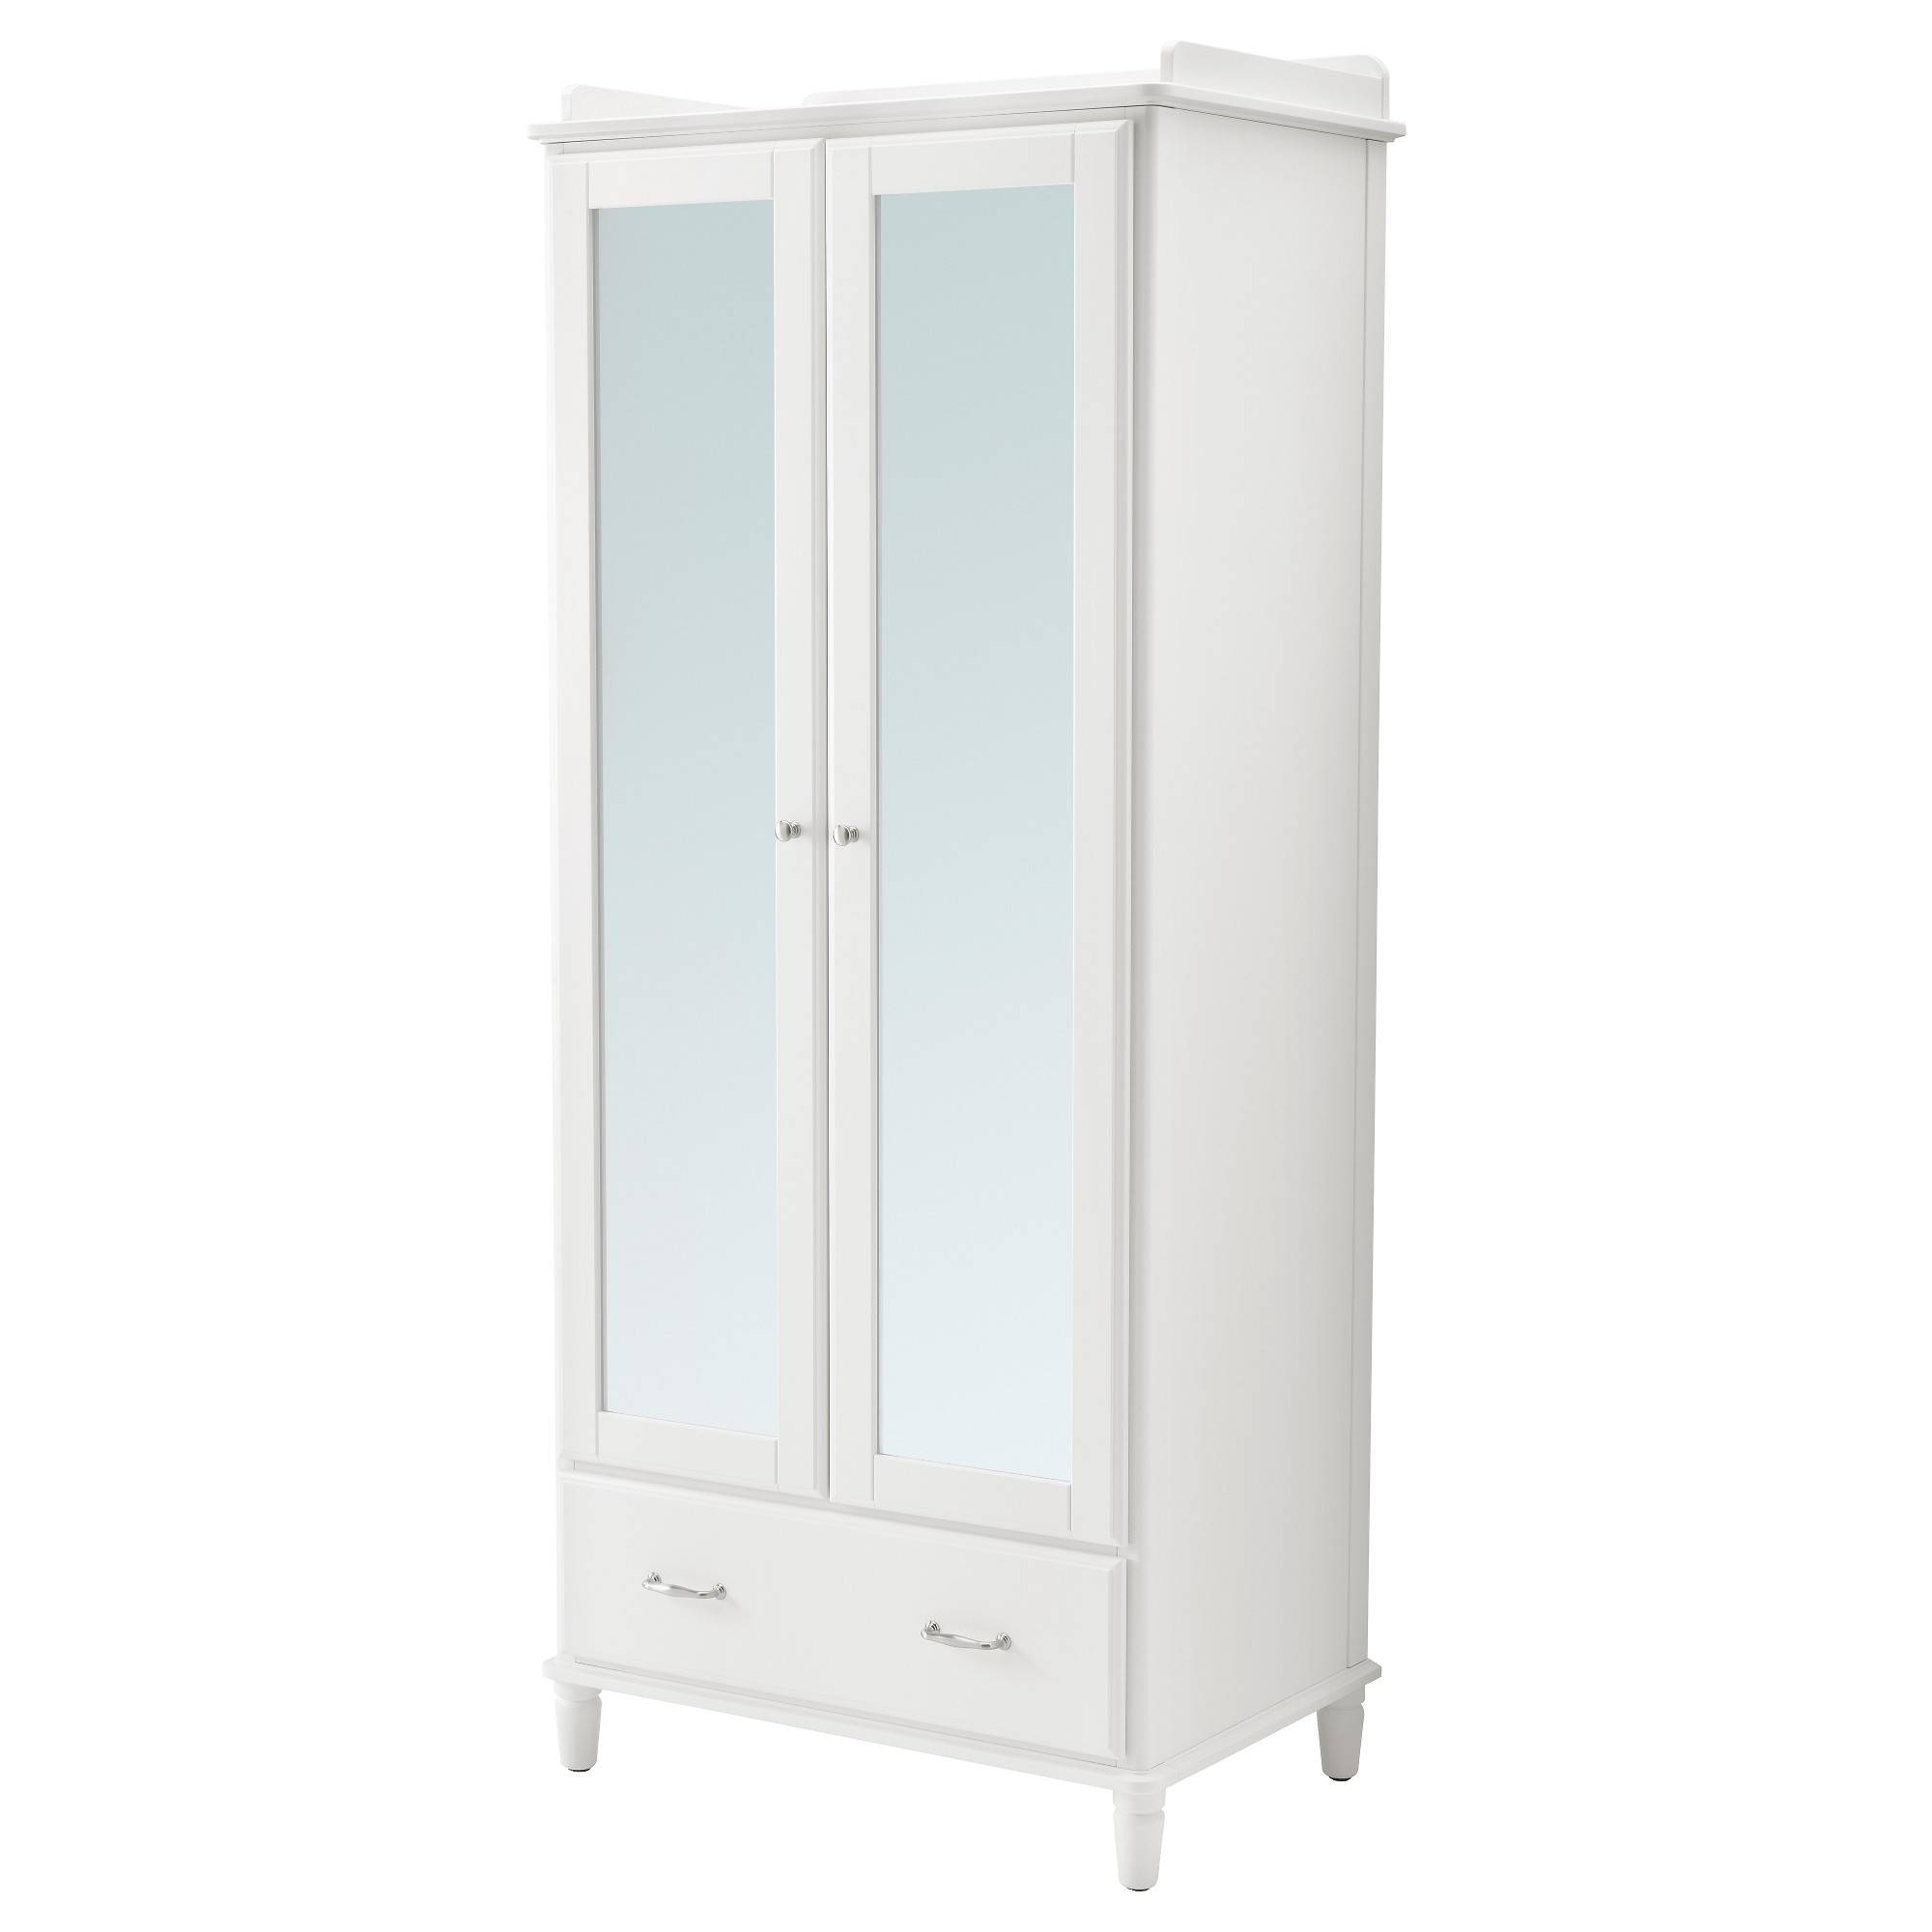 Wardrobes | Ikea with regard to Single White Wardrobes With Mirror (Image 14 of 15)